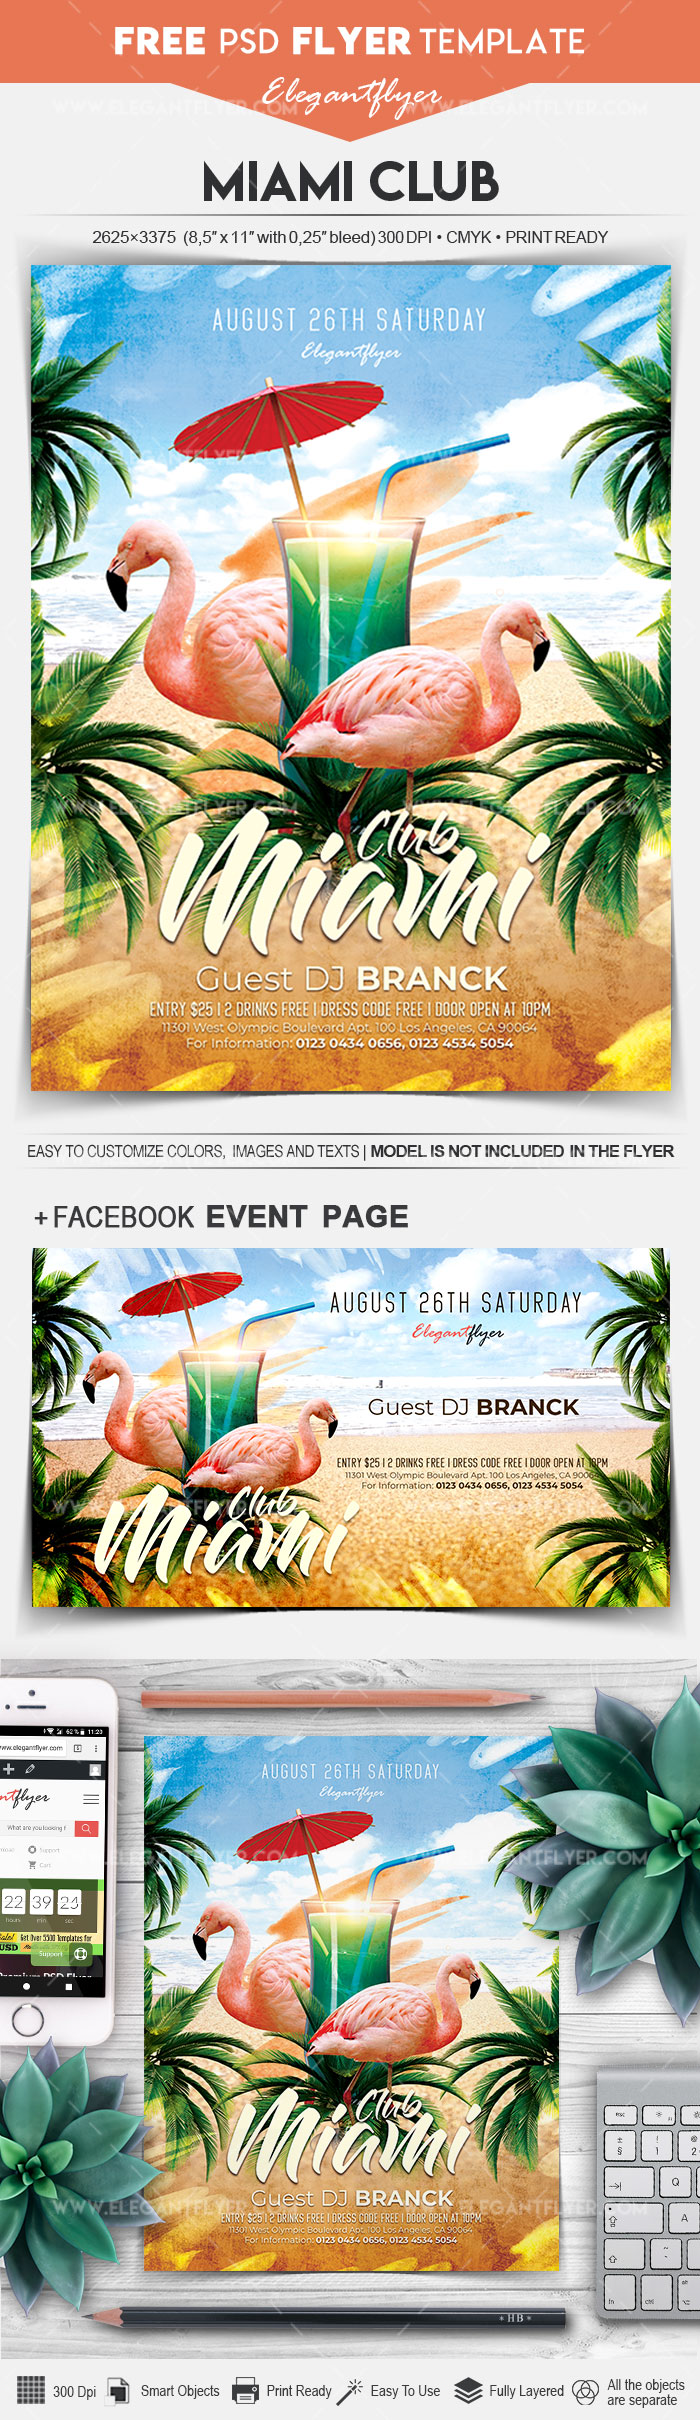 Miami Club – Free Flyer PSD Template